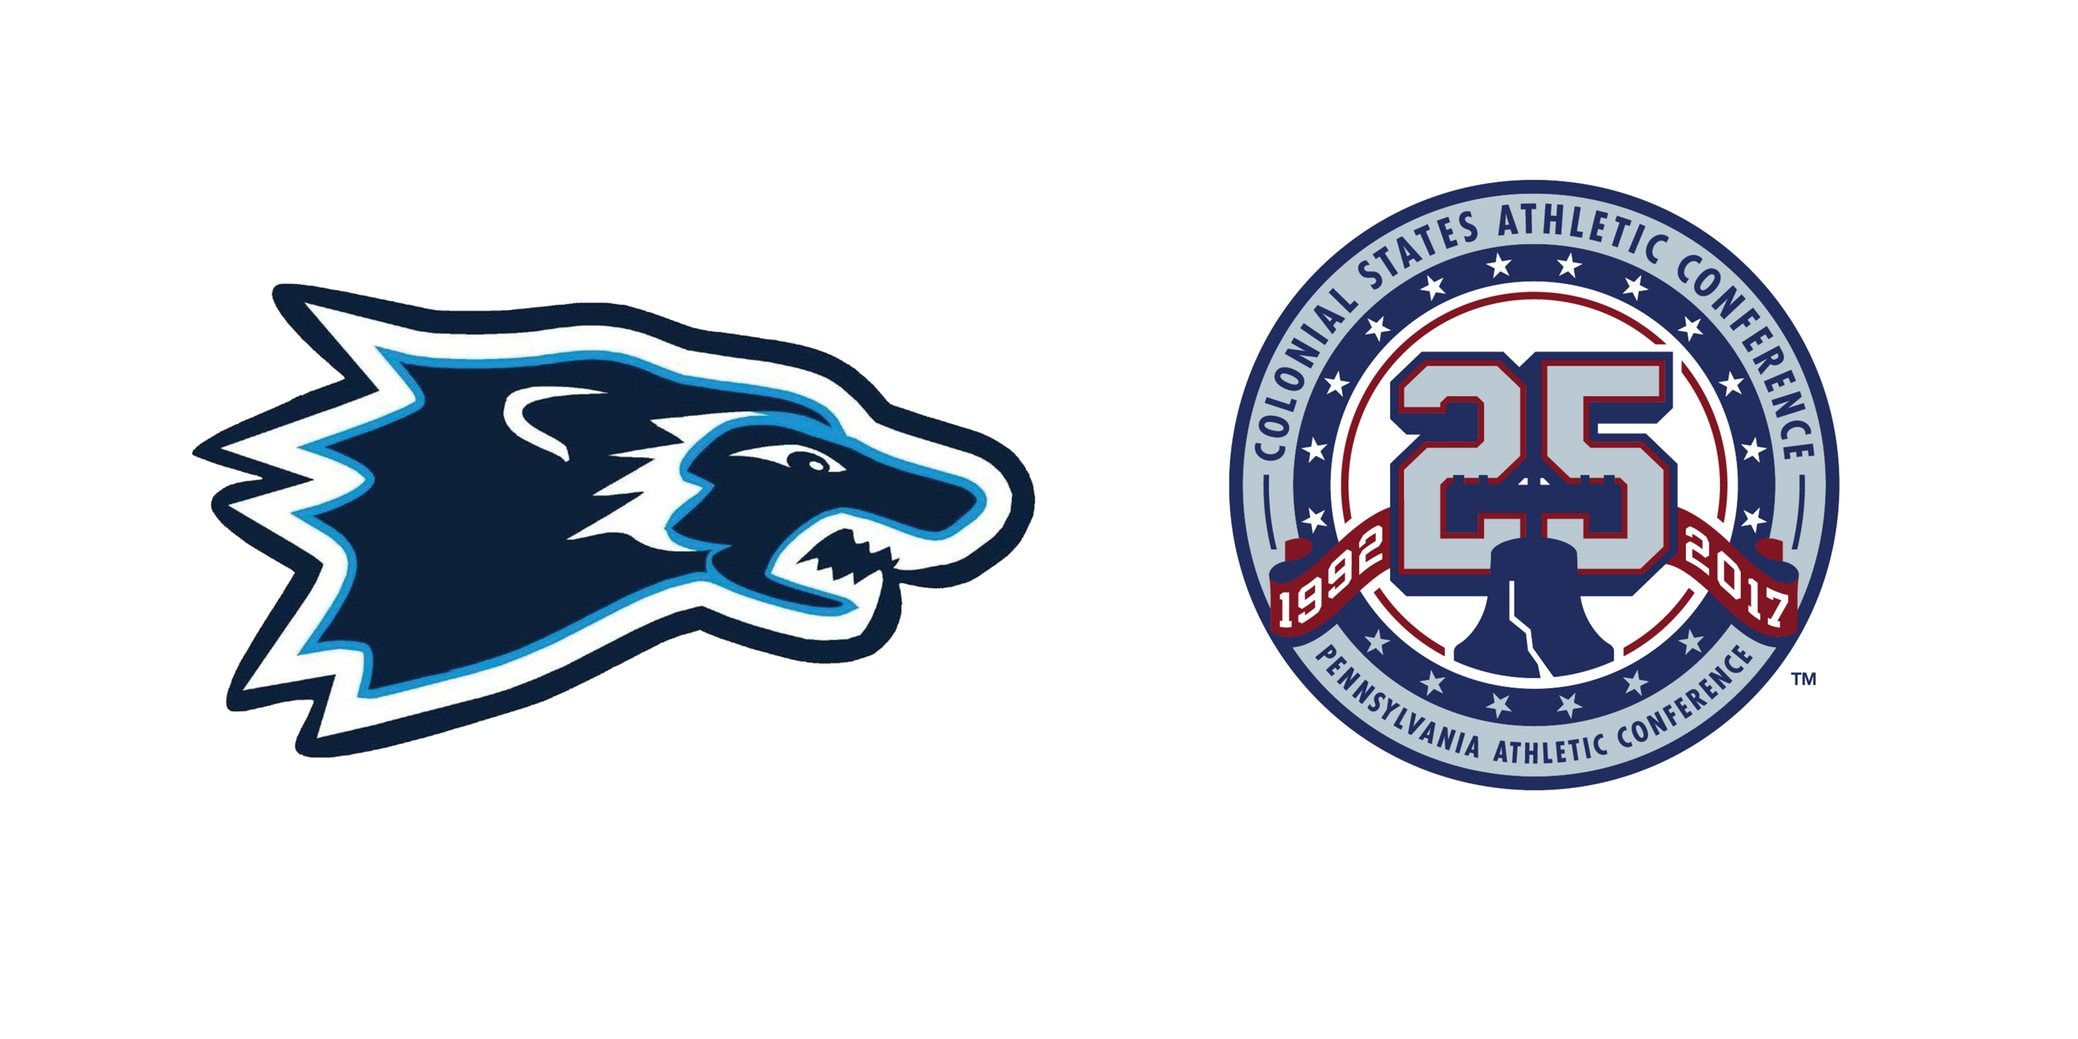 Wesley represented on CSAC/PAC 25th Anniversary Teams